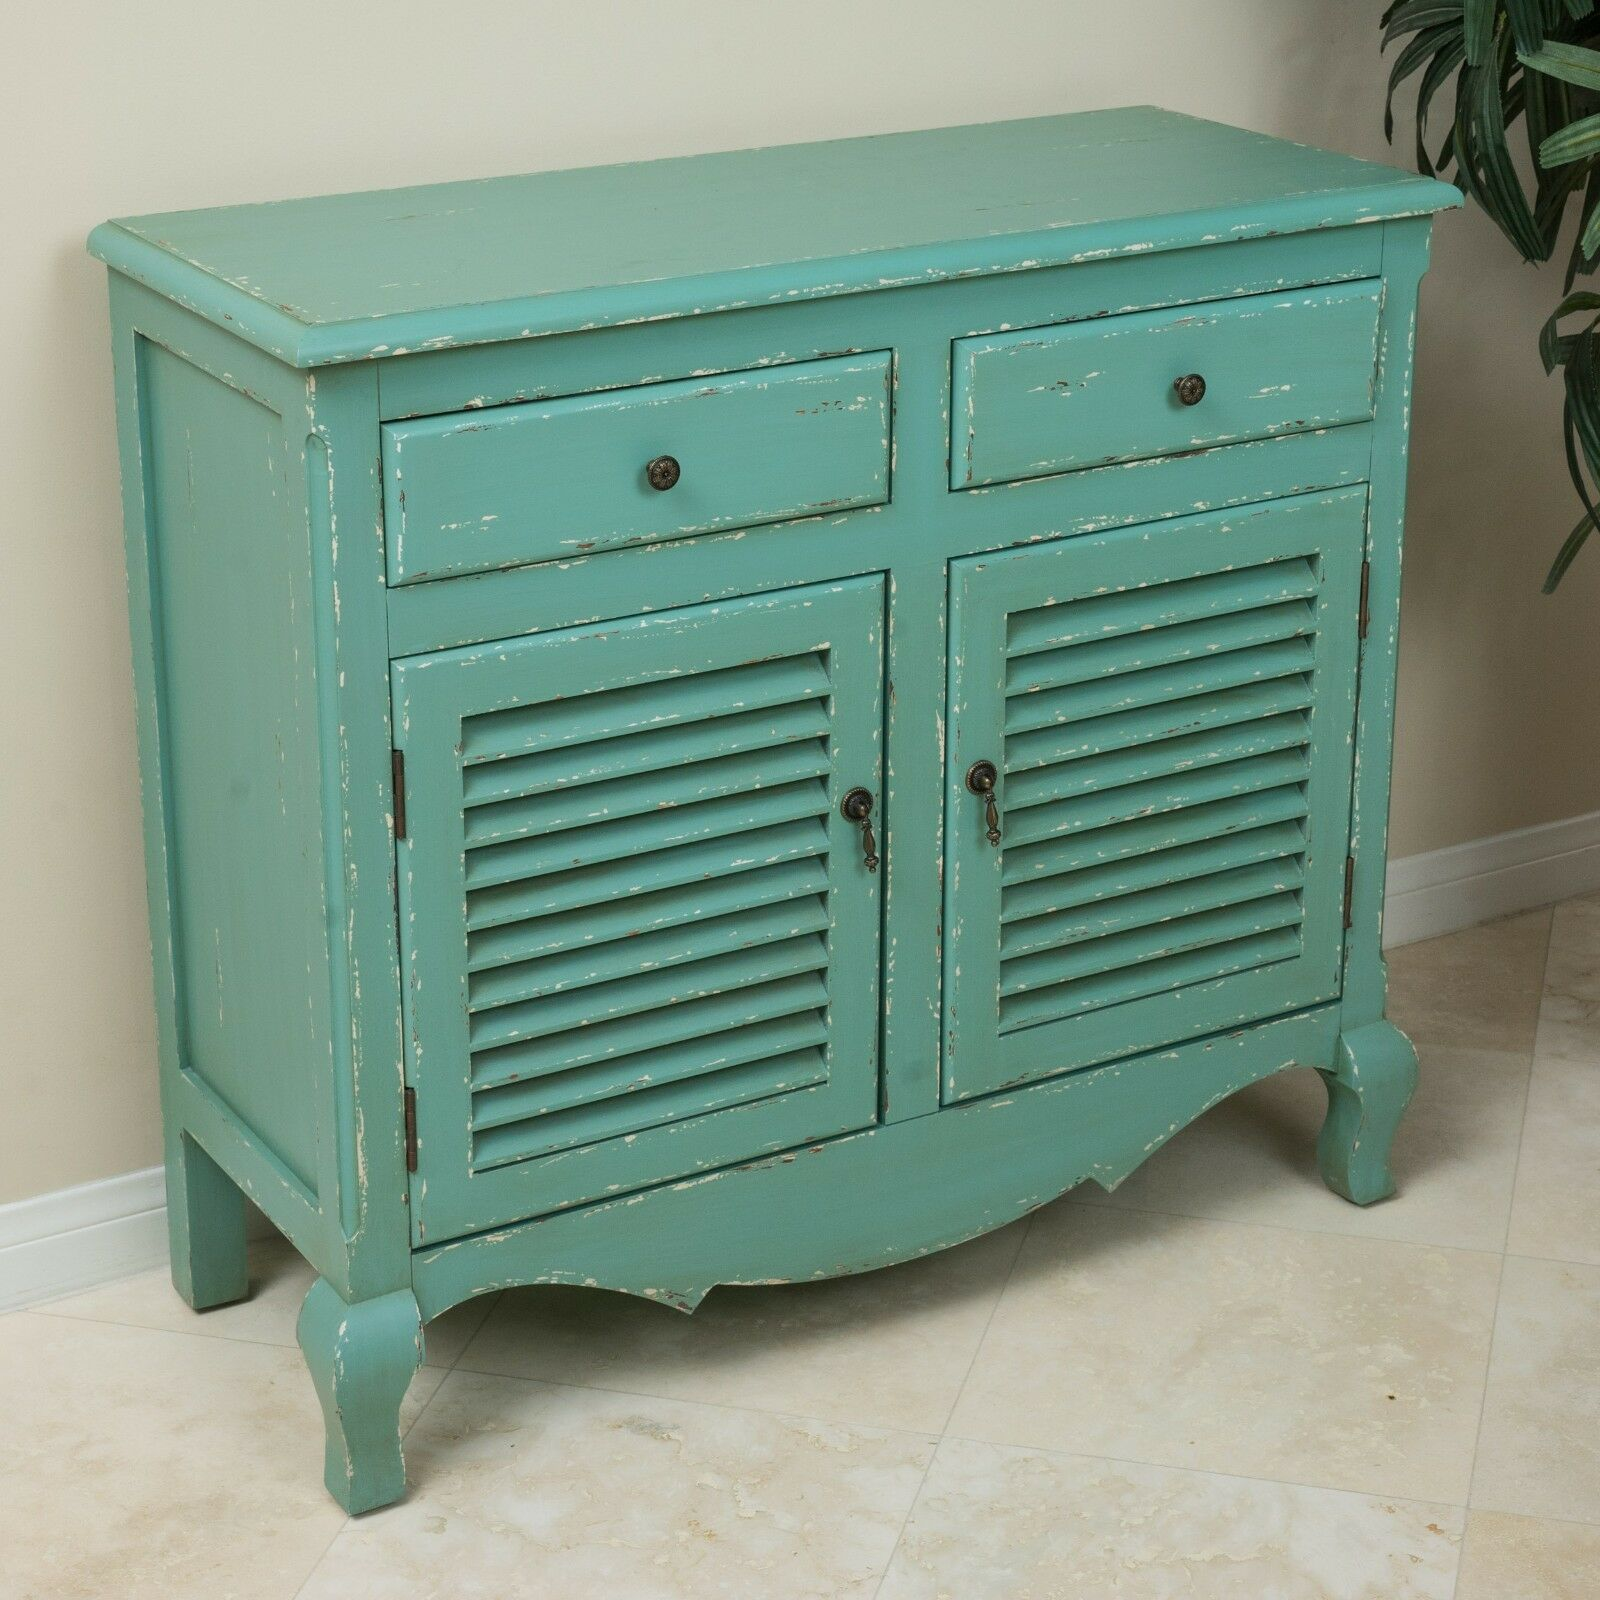 shabby chic inspired antique teal green weathered wood storage shutter cabinet. Black Bedroom Furniture Sets. Home Design Ideas